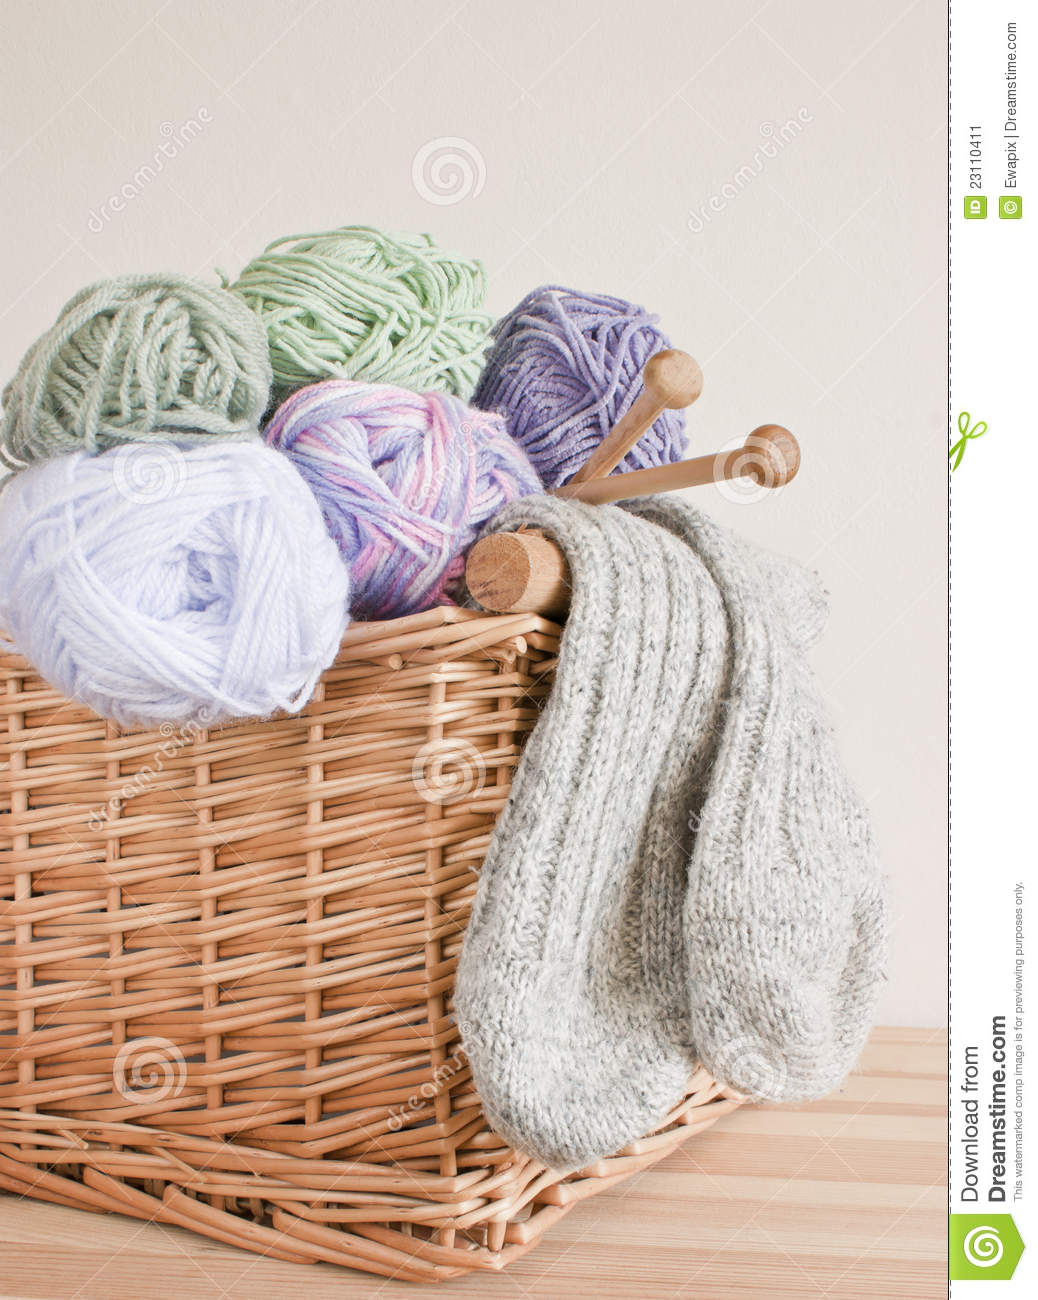 Basket With Wool, Knitting Needles And Socks. Stock Image - Image: 23110411